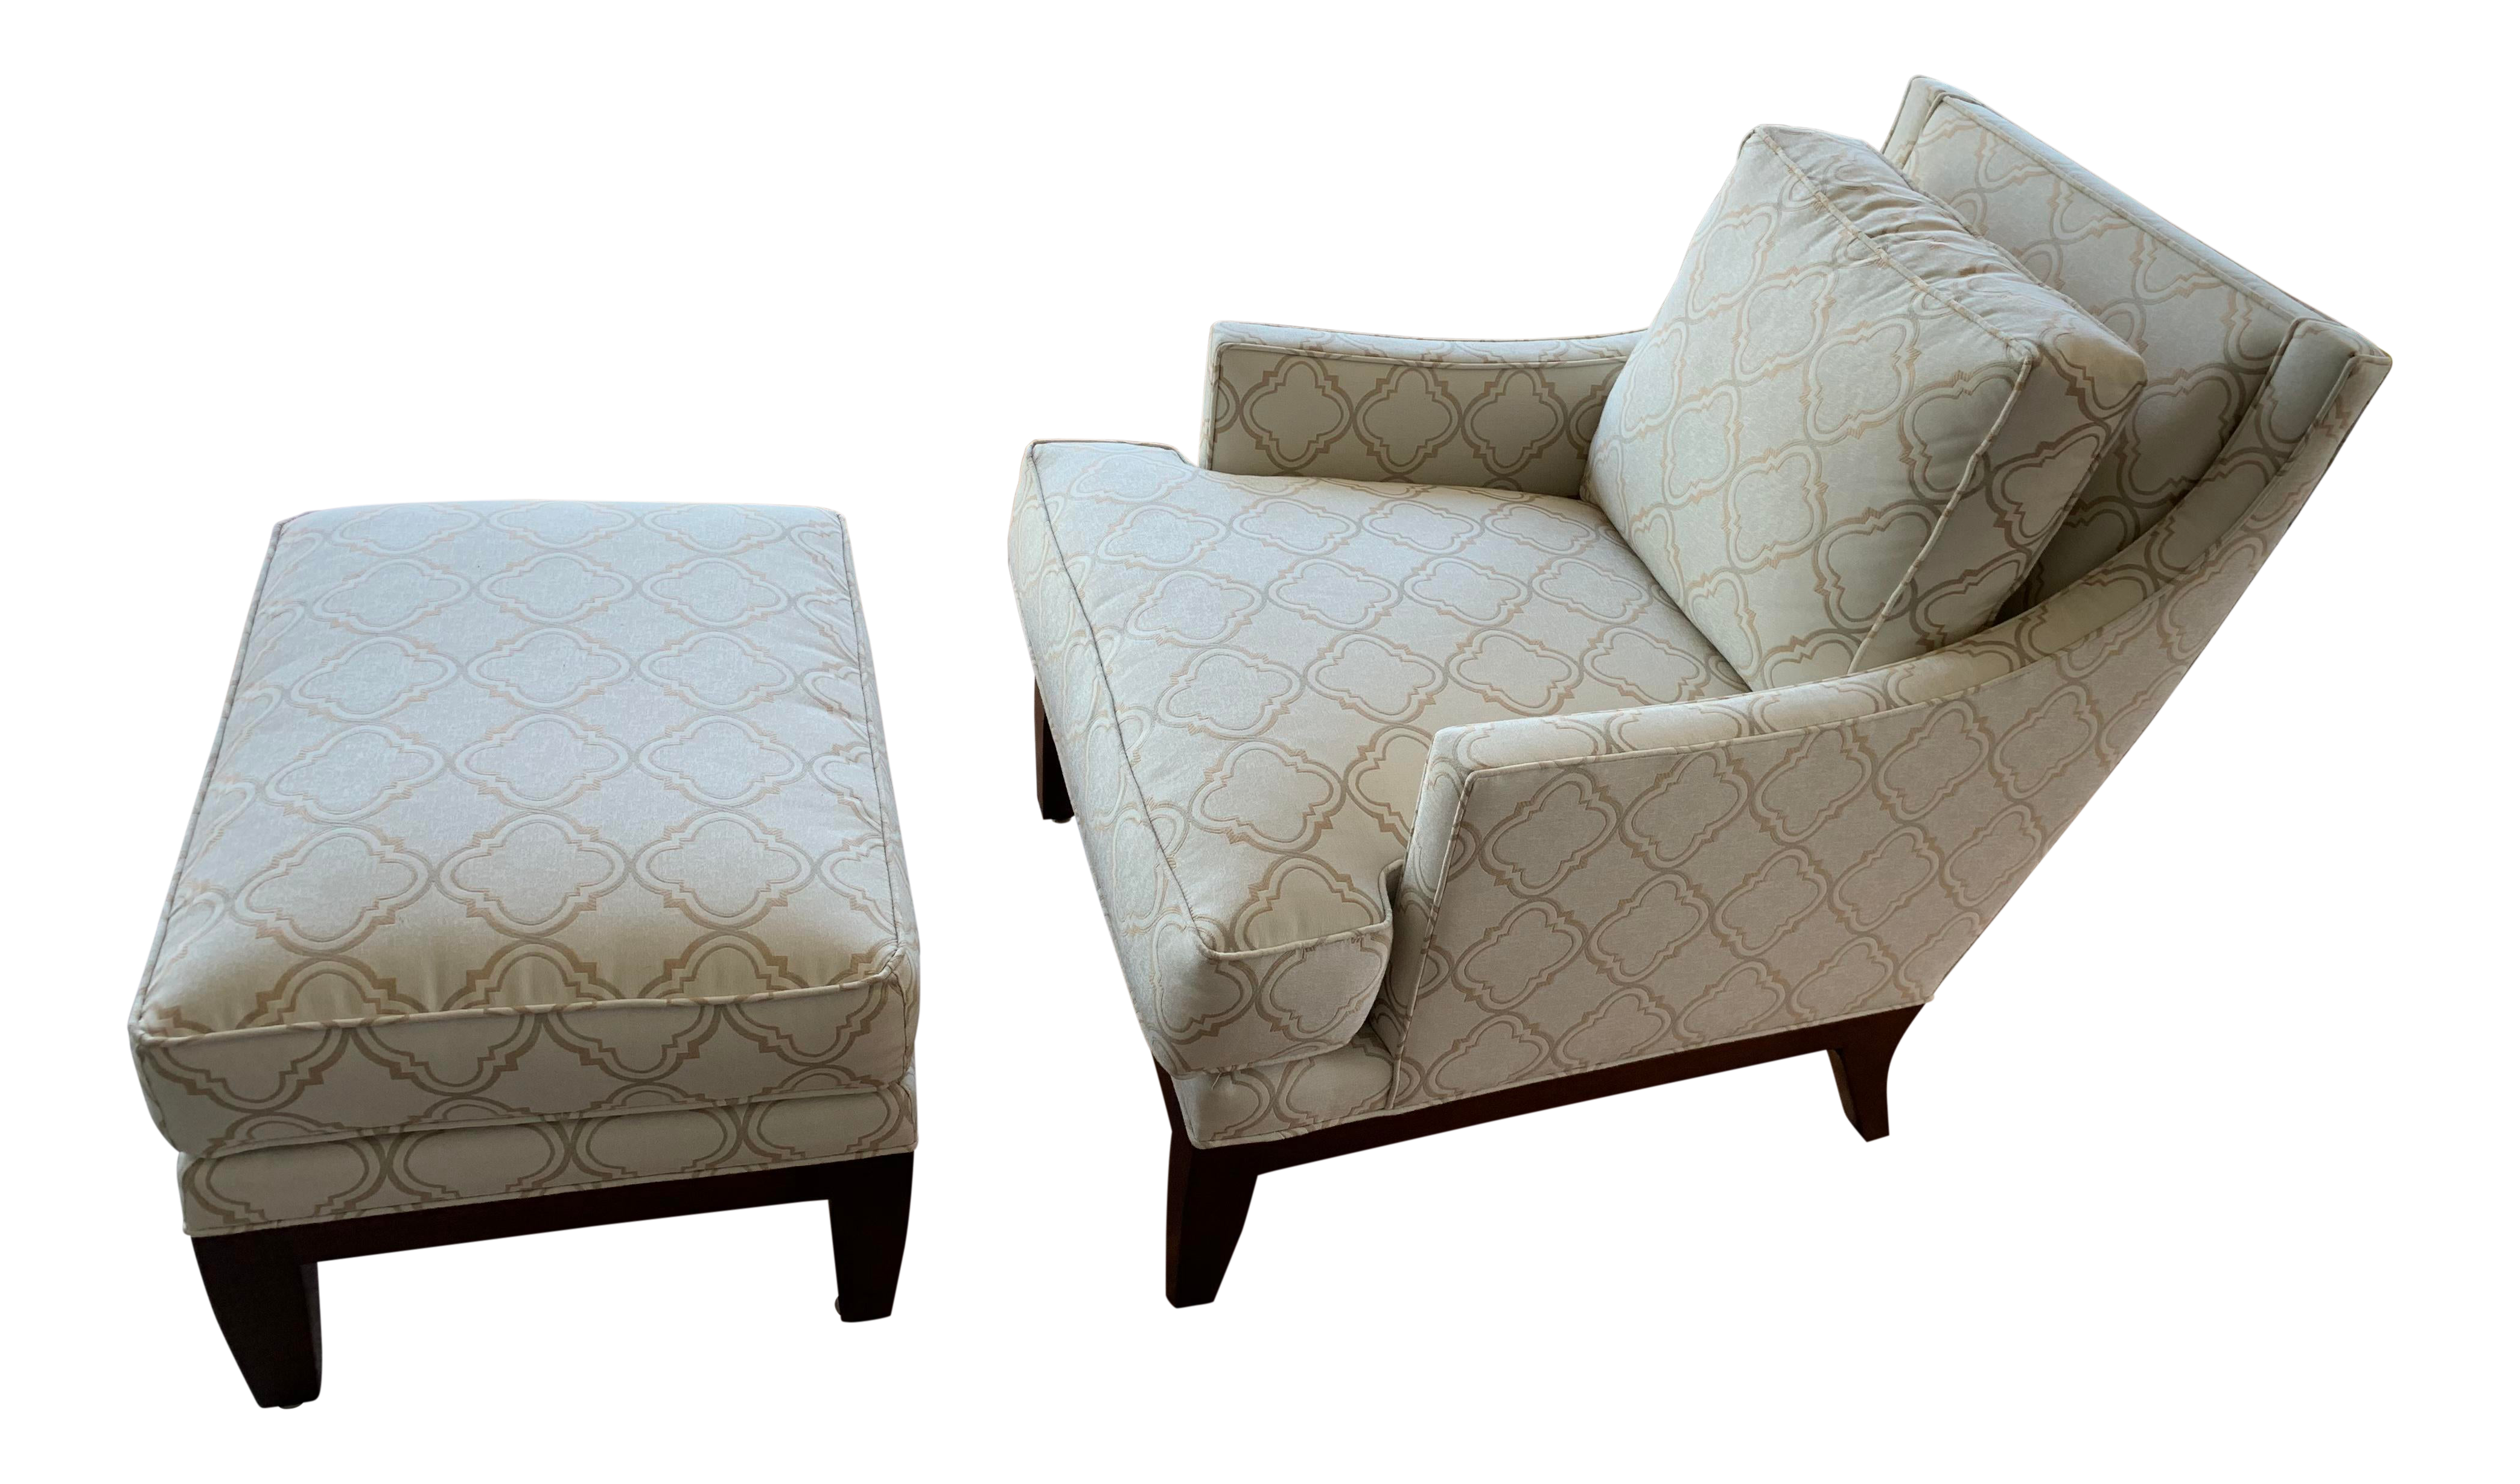 Remarkable Stickley Tribeca Style Chaise And Ottoman Pdpeps Interior Chair Design Pdpepsorg